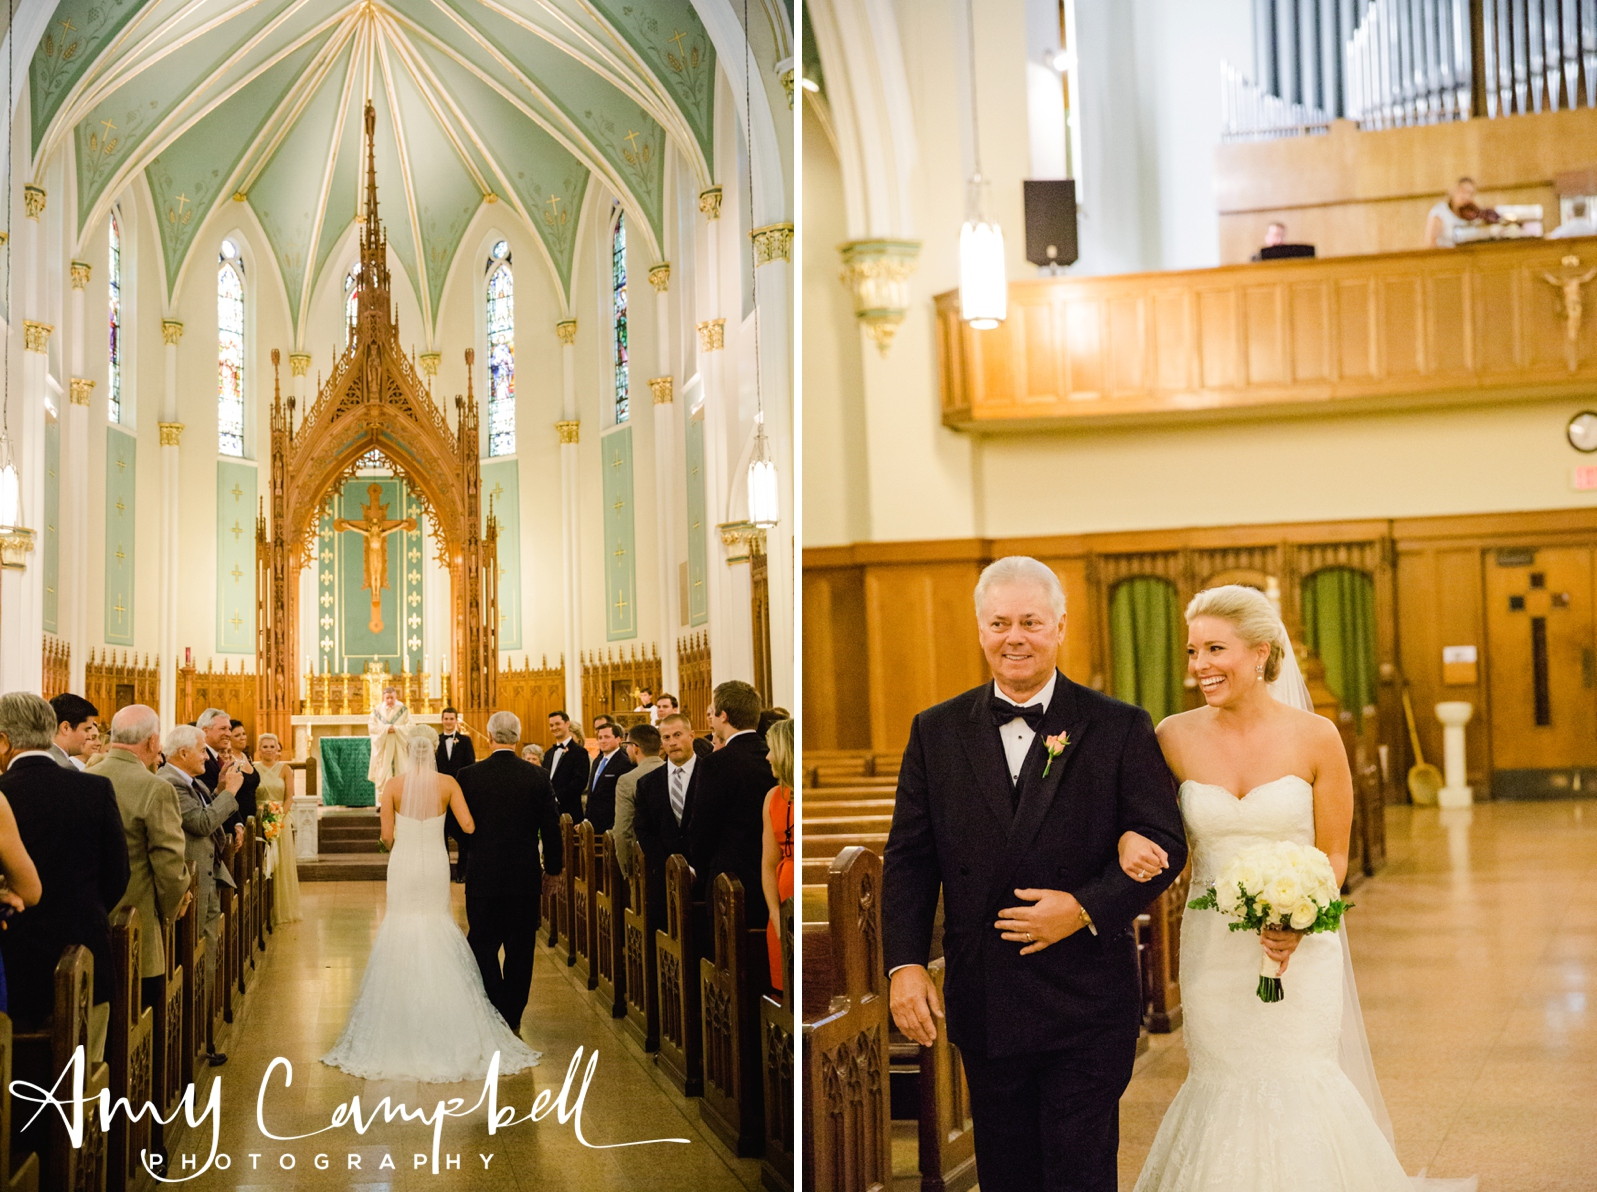 chelseamike_wedss_pics_amycampbellphotography_068.jpg